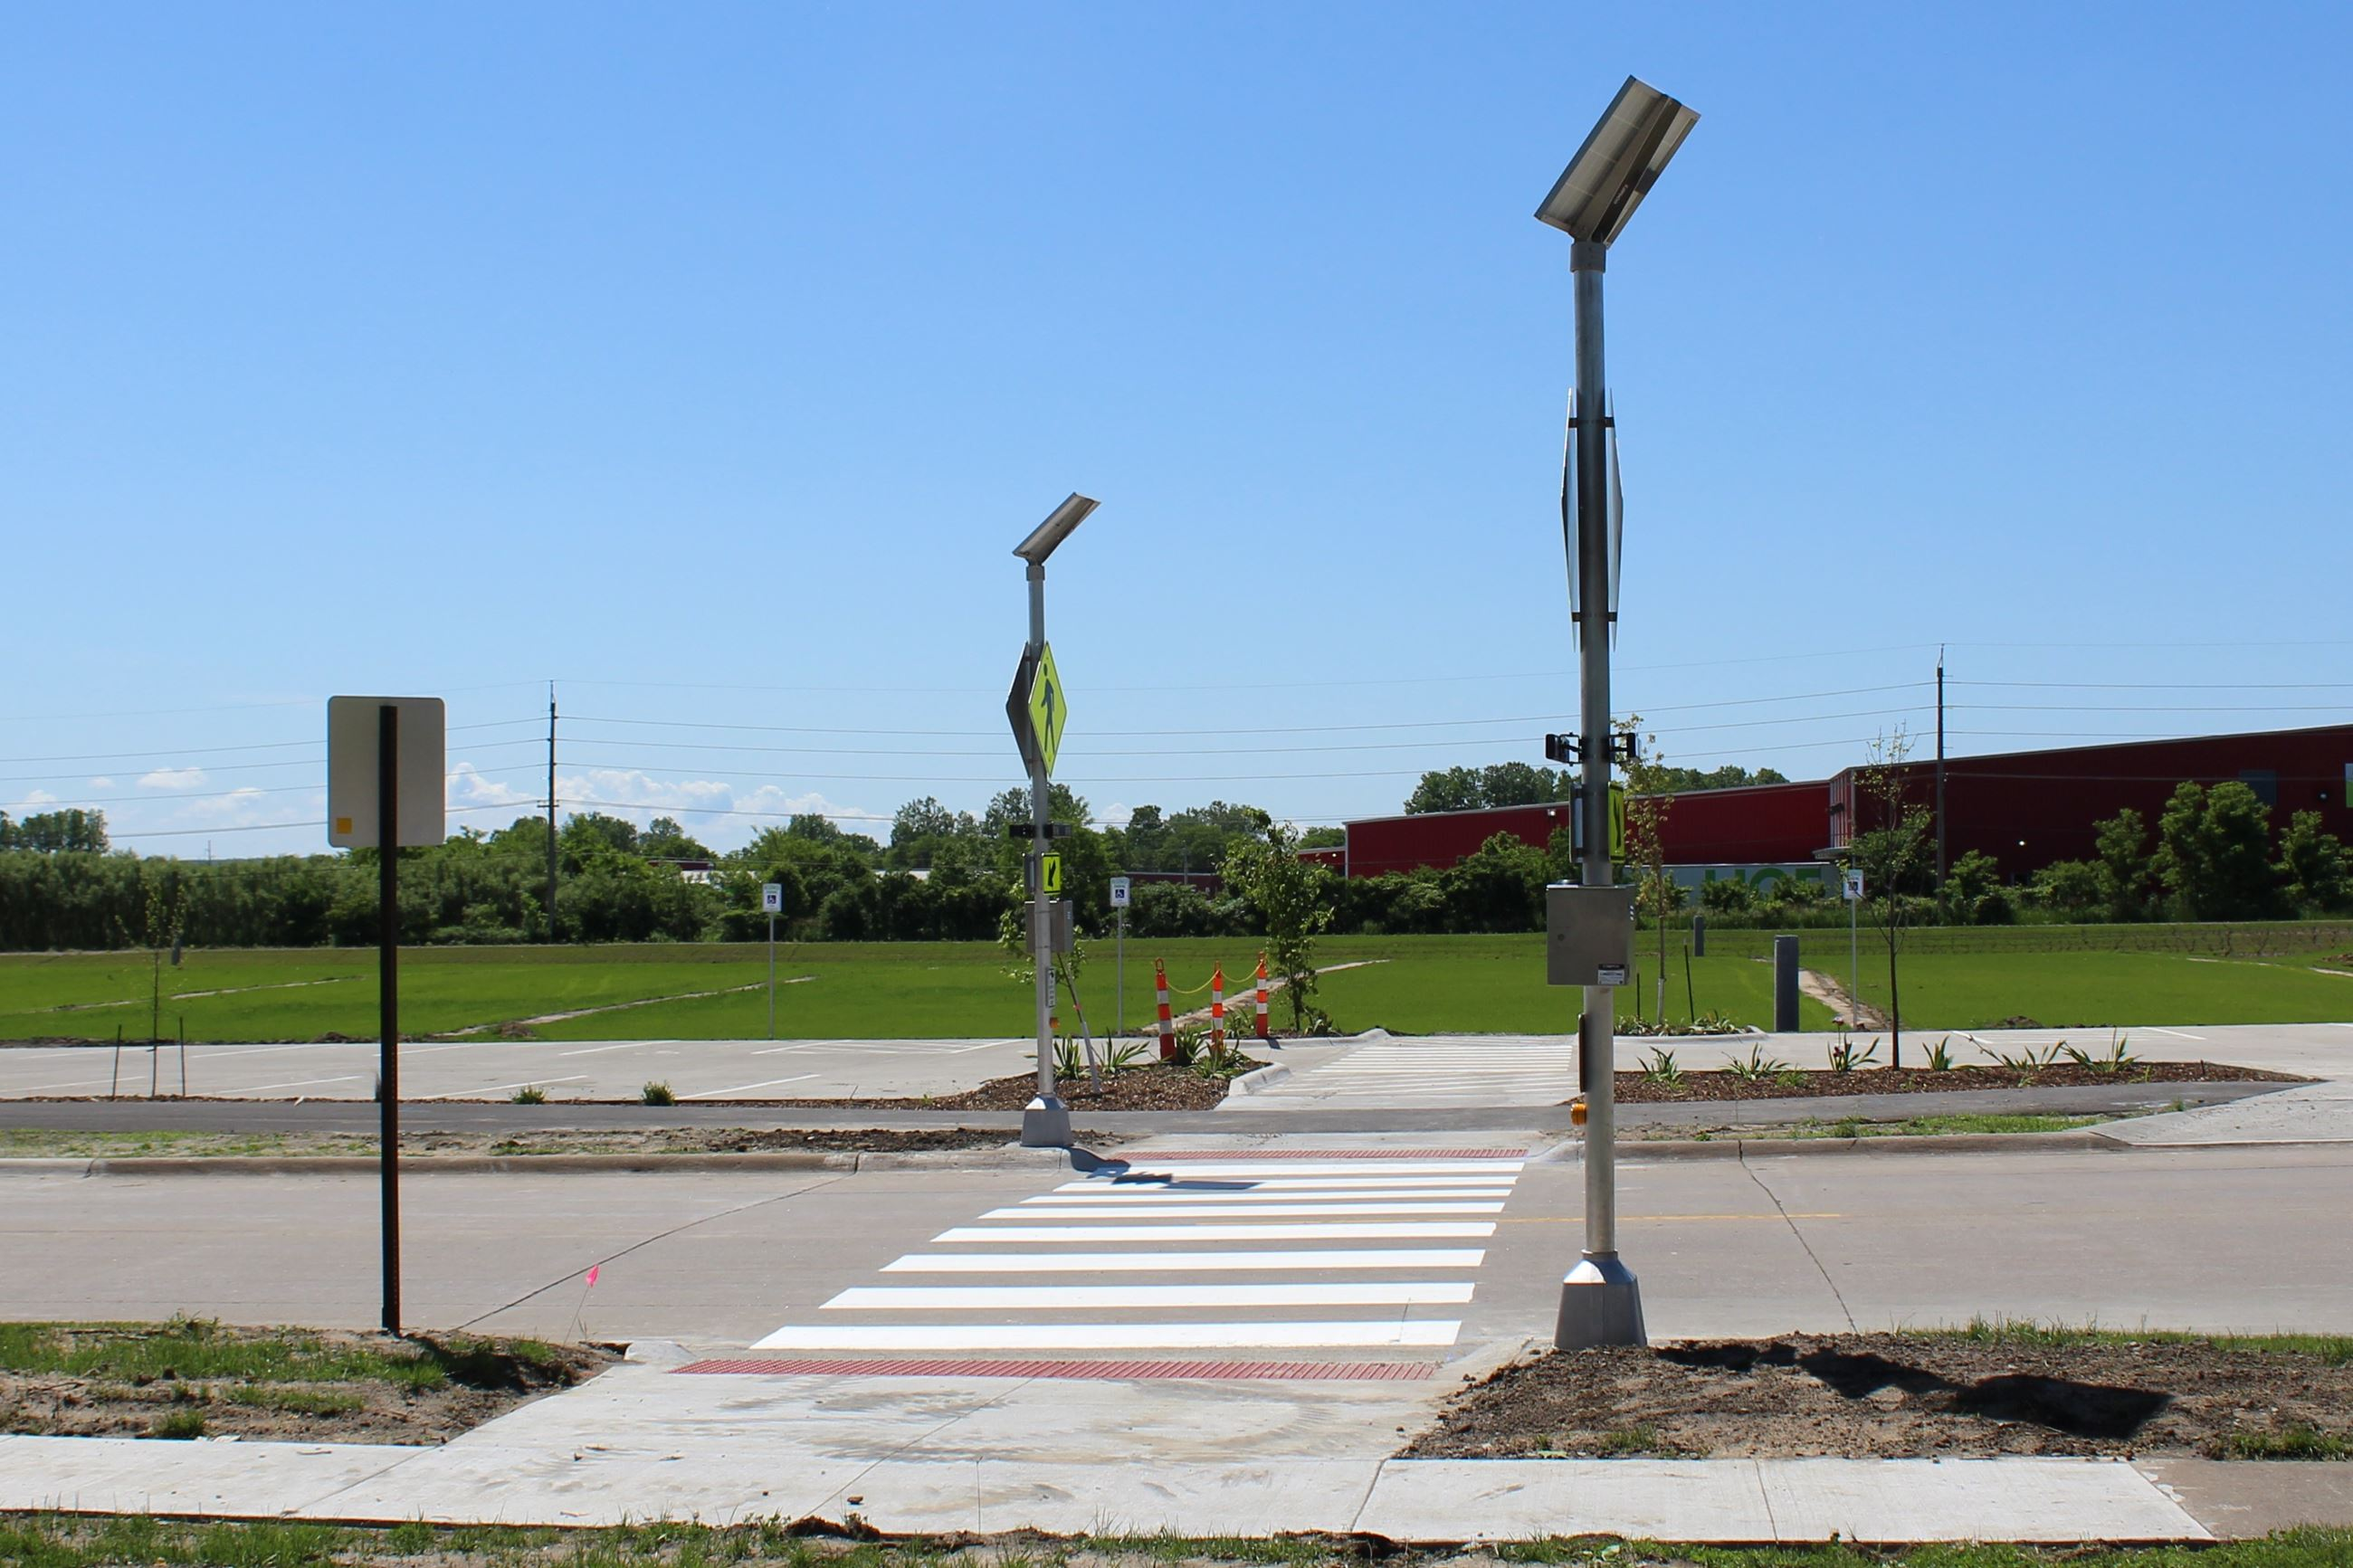 Traffic crossing at Houser Street athletic complex June 5, 2019 (JPG)